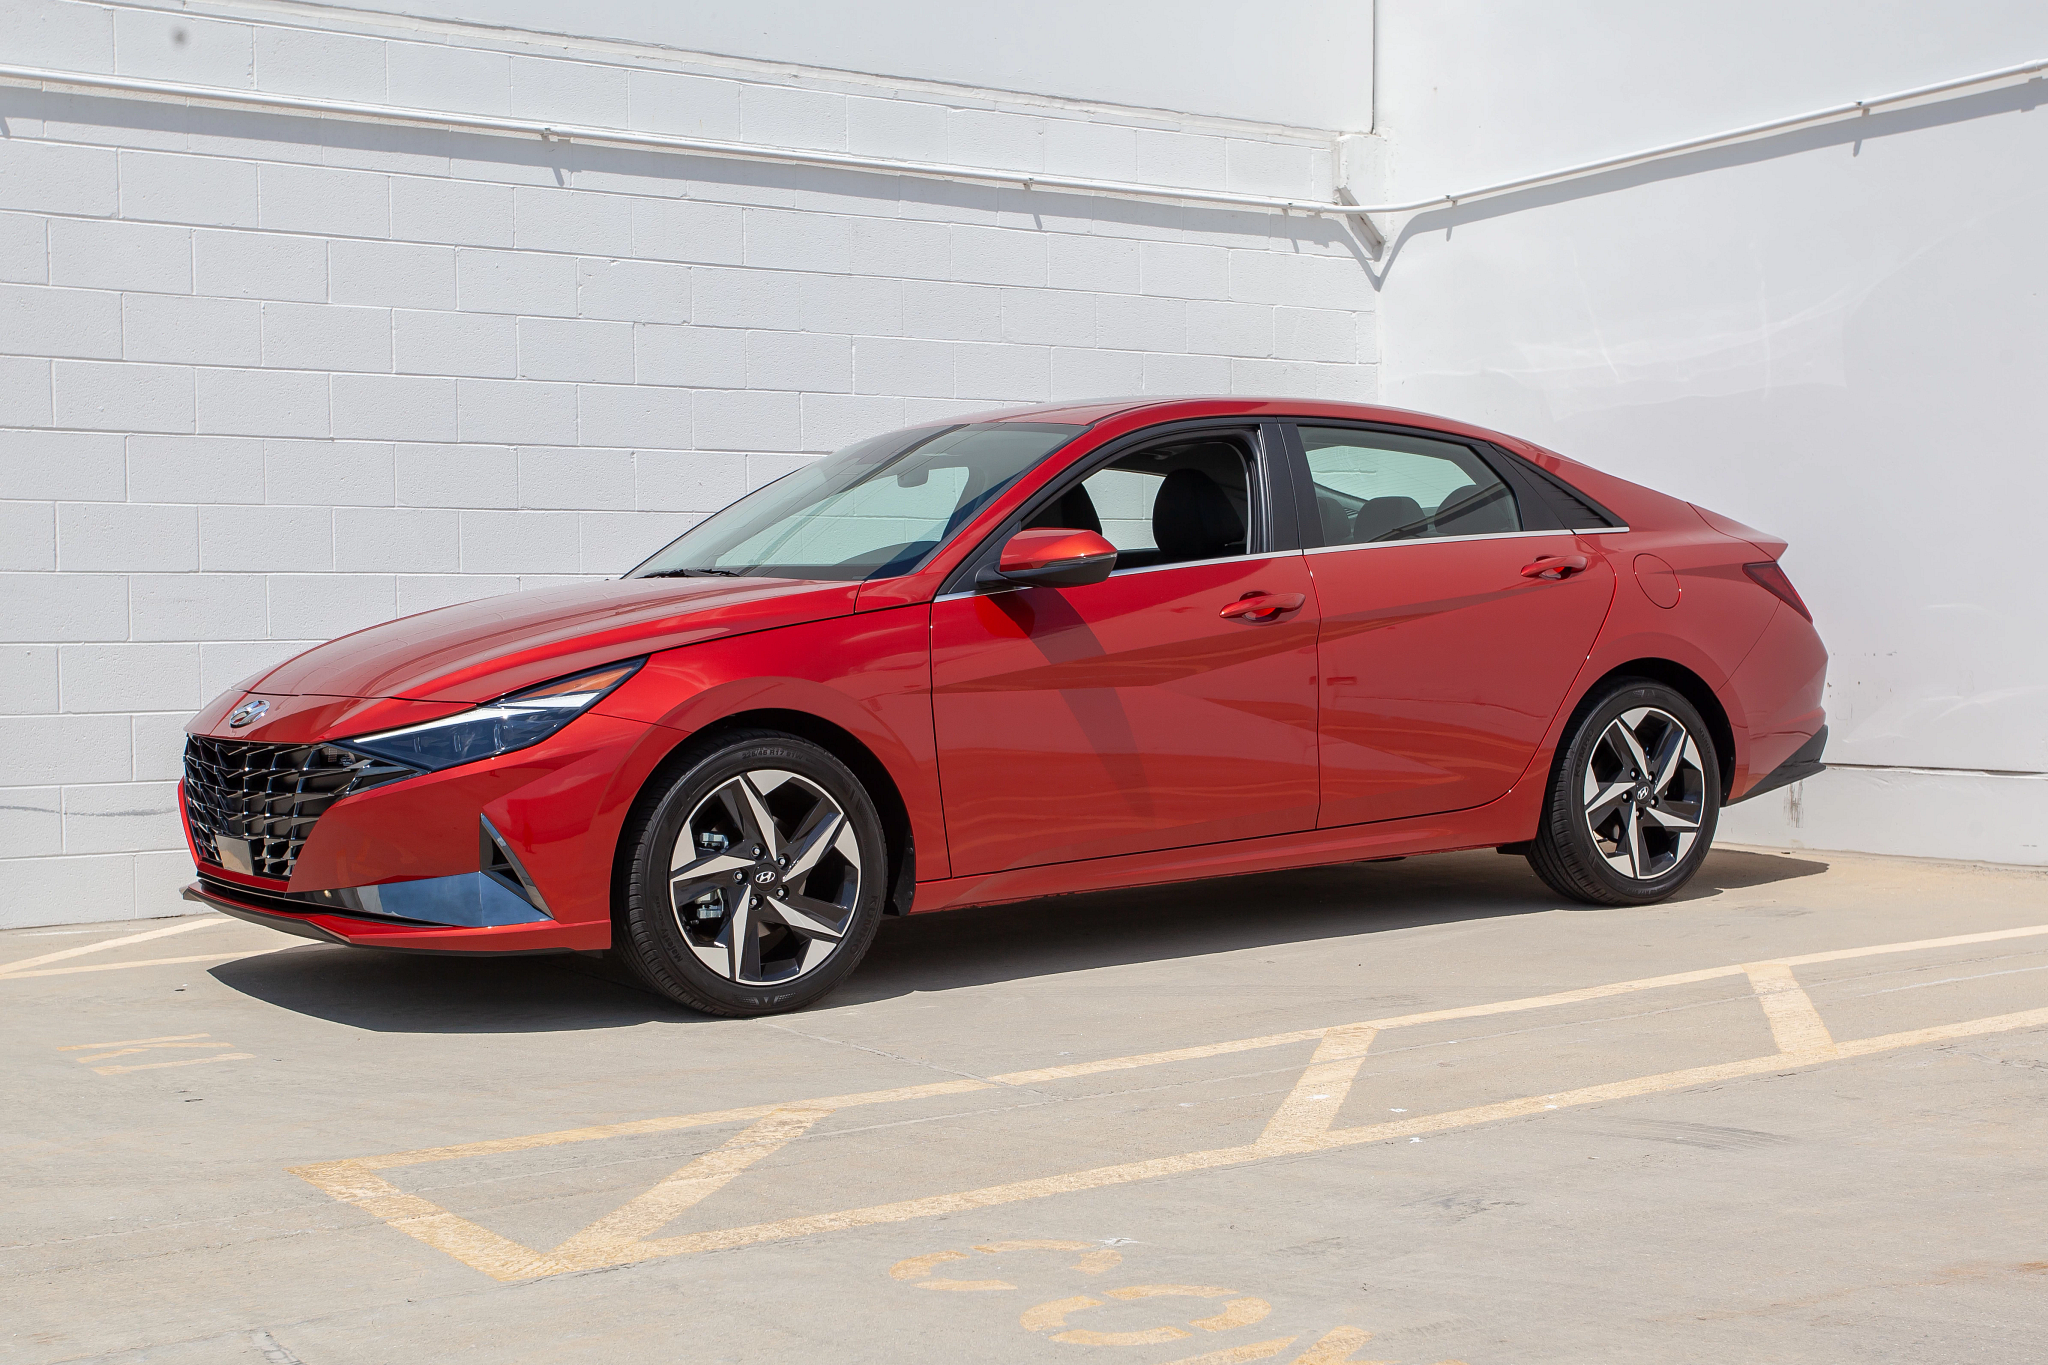 How the 2021 Hyundai Elantra Stands Out Vs. Honda Civic, Toyota Corolla